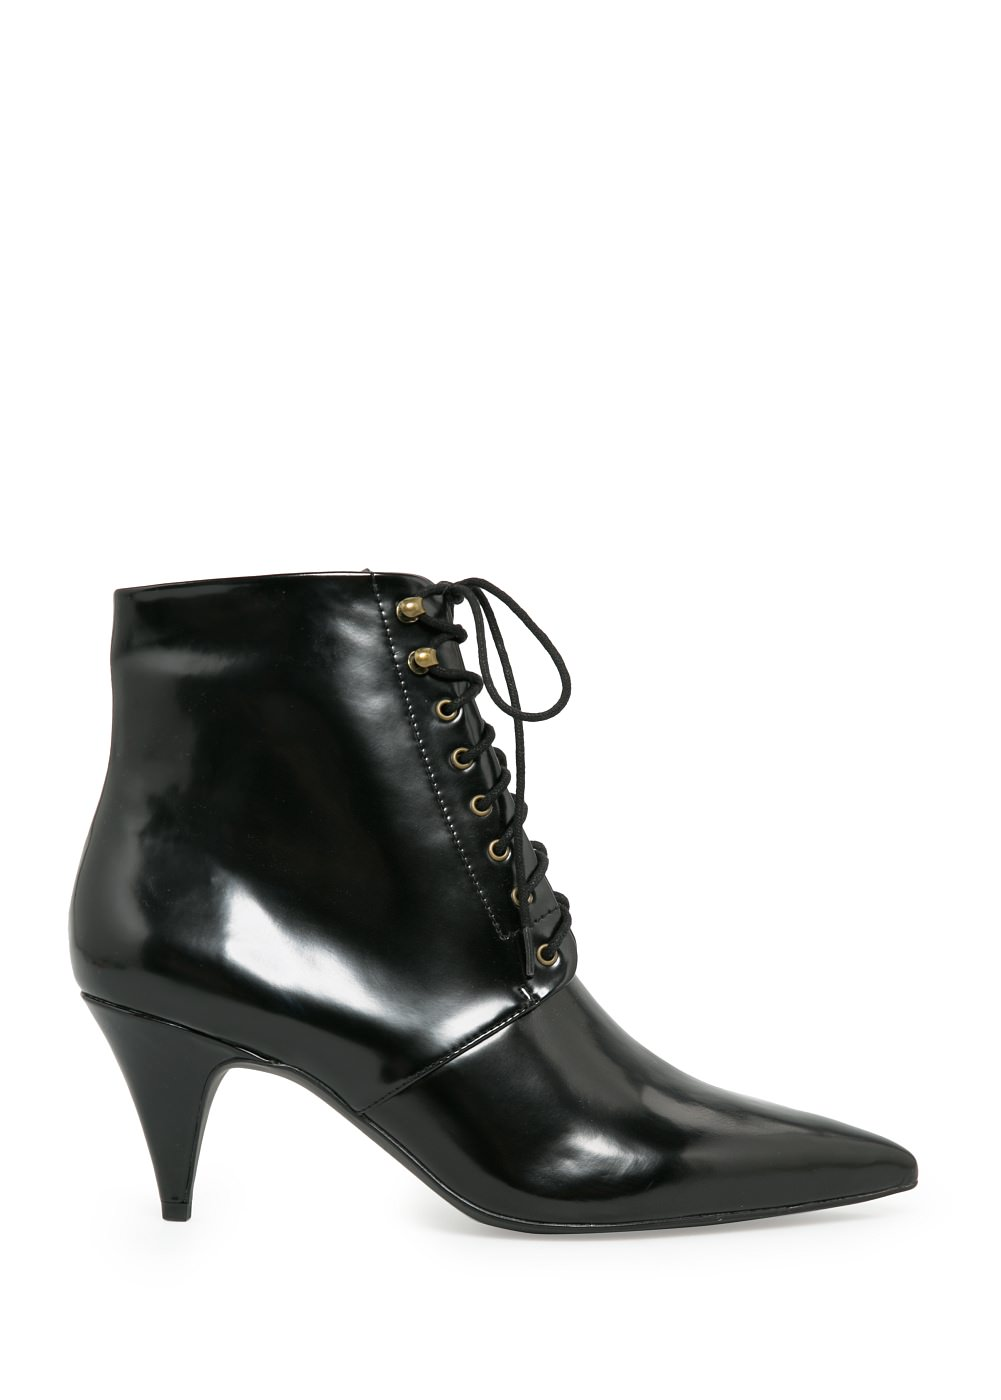 Lace Up Ankle Boots With Heel - Qu Heel